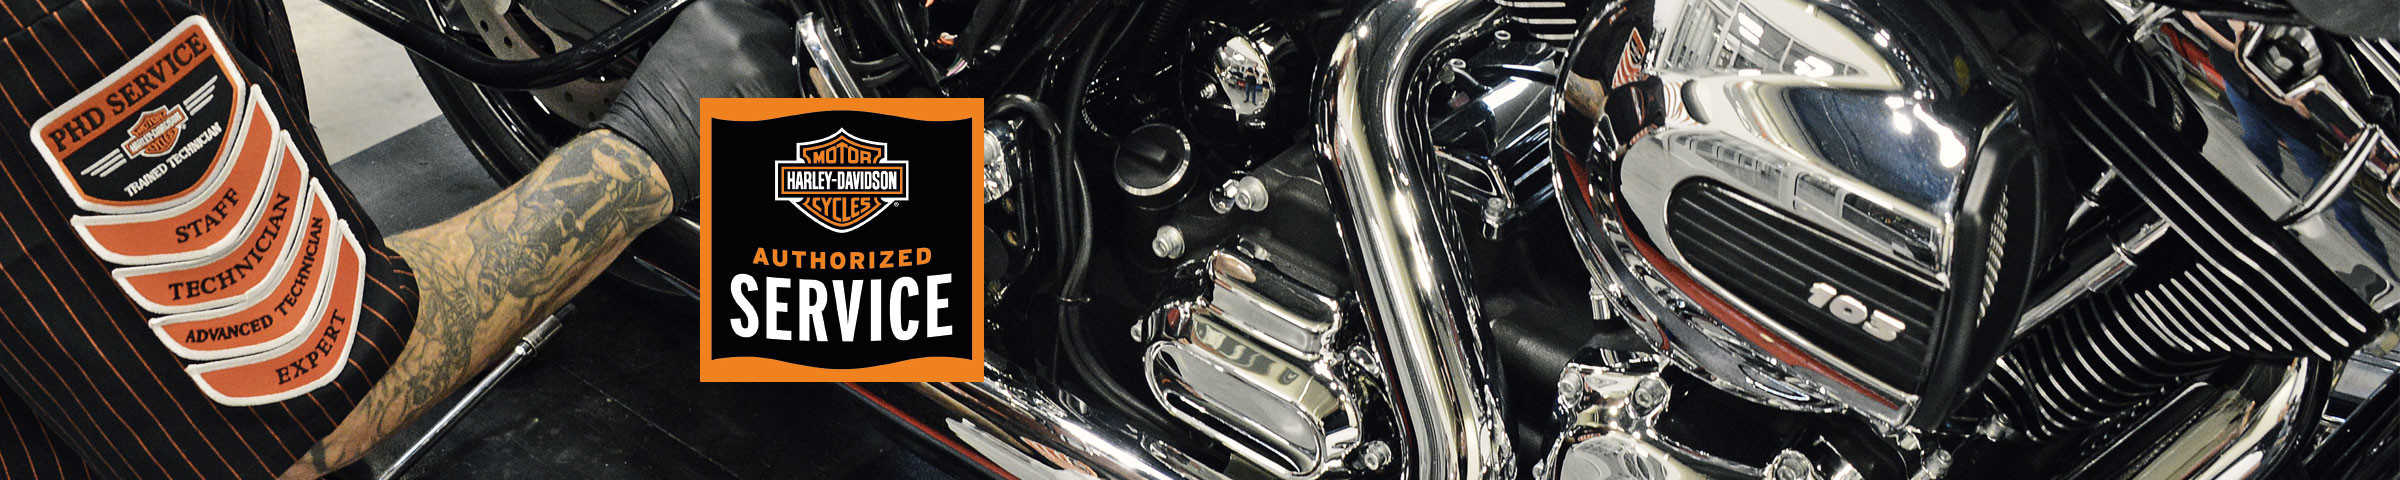 Richmond Harley-Davidson® Service Department